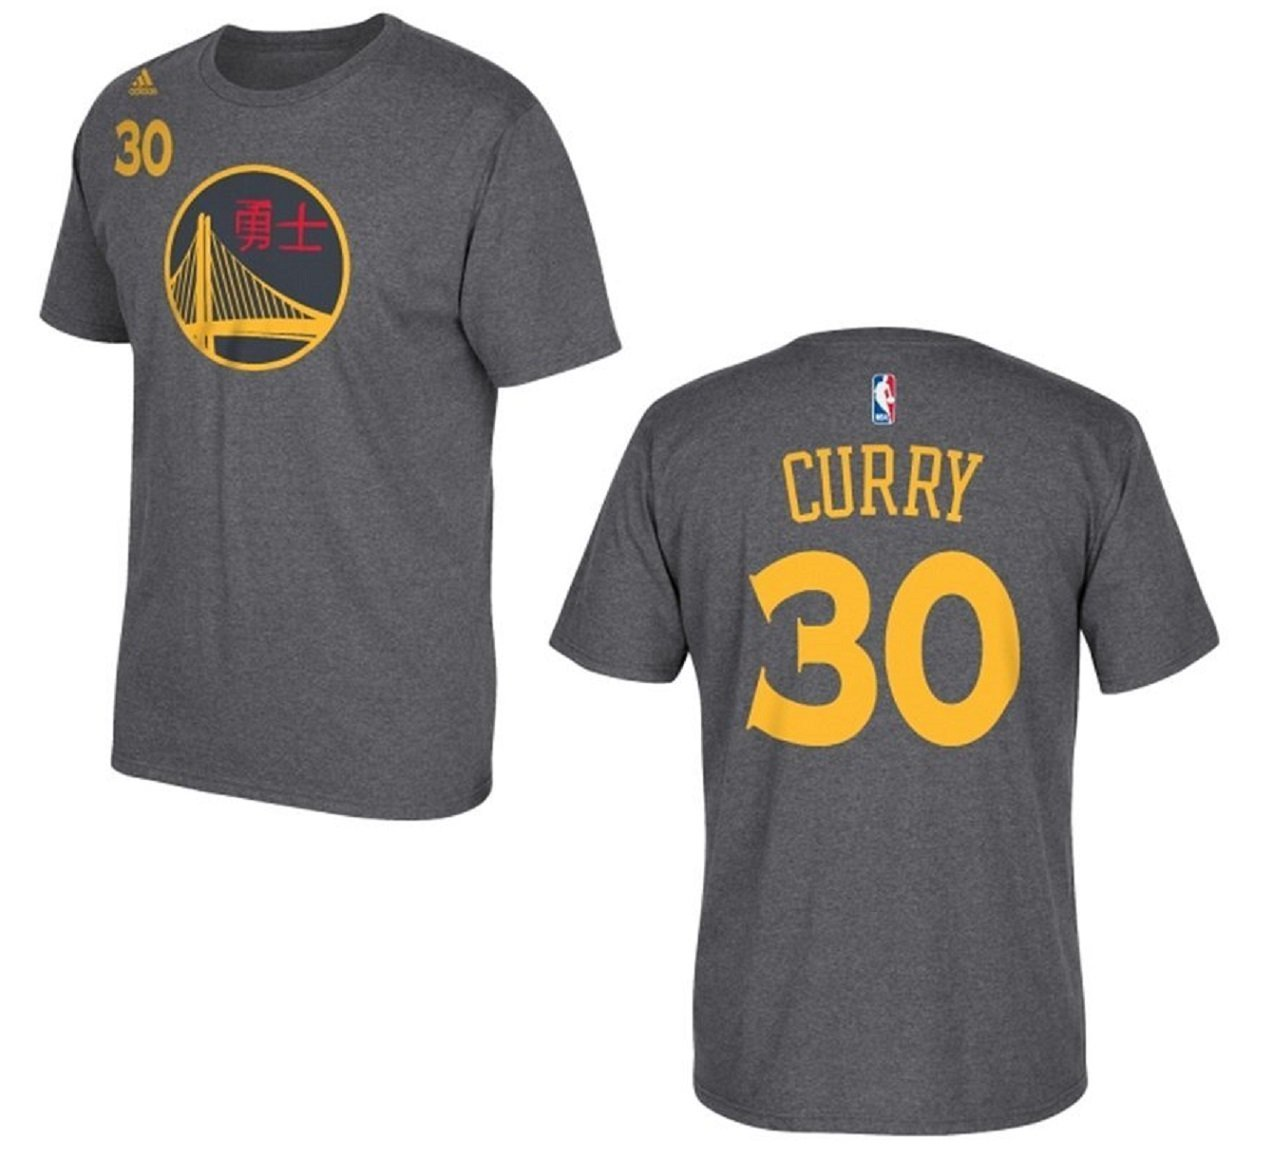 the best attitude 2a198 1bdc1 adidas Stephen Curry Youth Name & Number T-Shirt - Grey - Size: Small 8 -  Check Back Soon